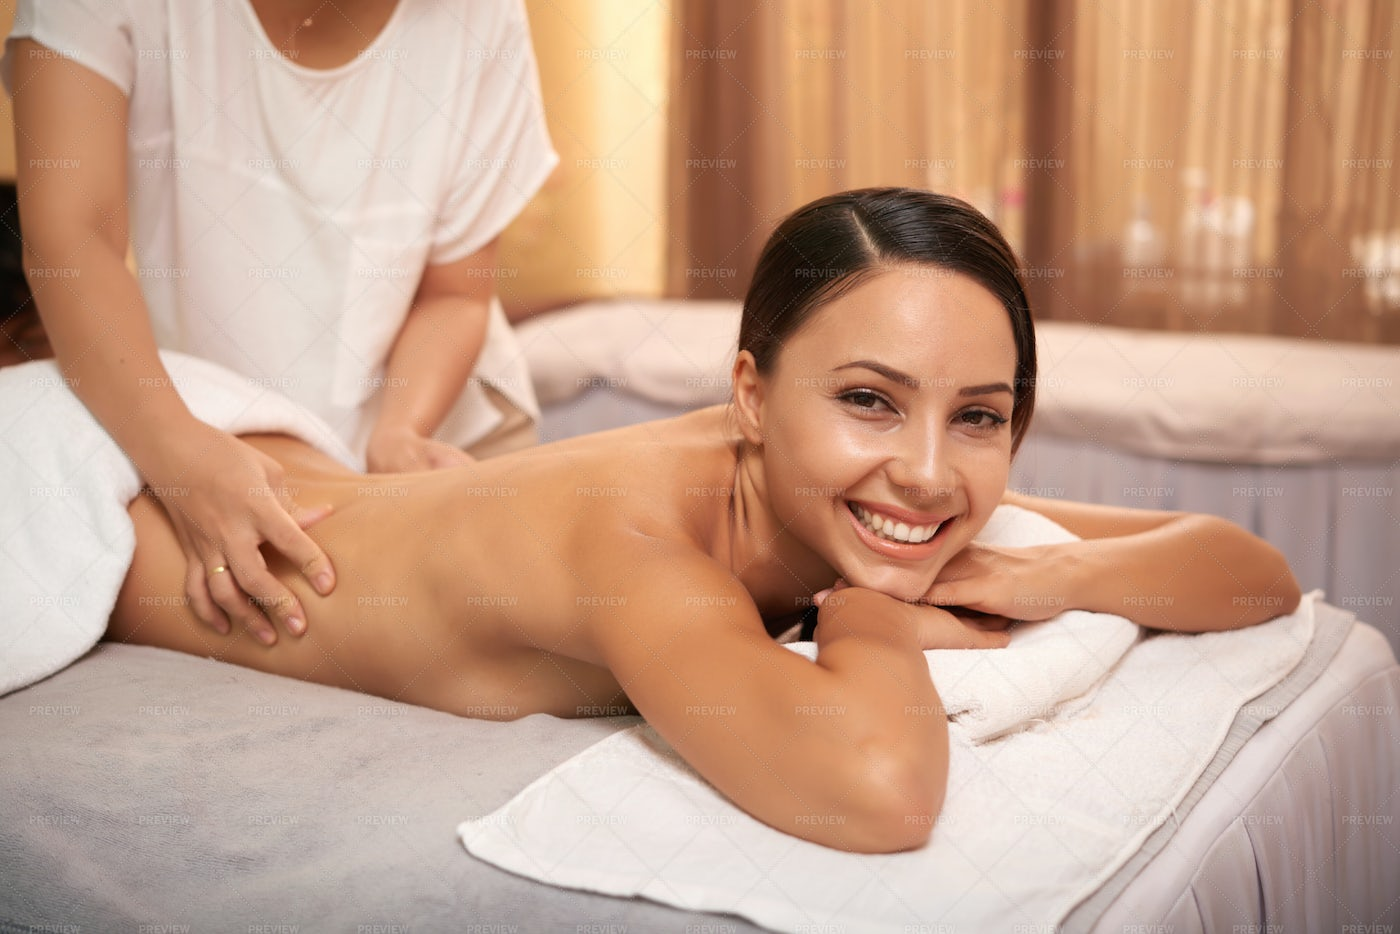 Woman Getting Massage For Her Back: Stock Photos